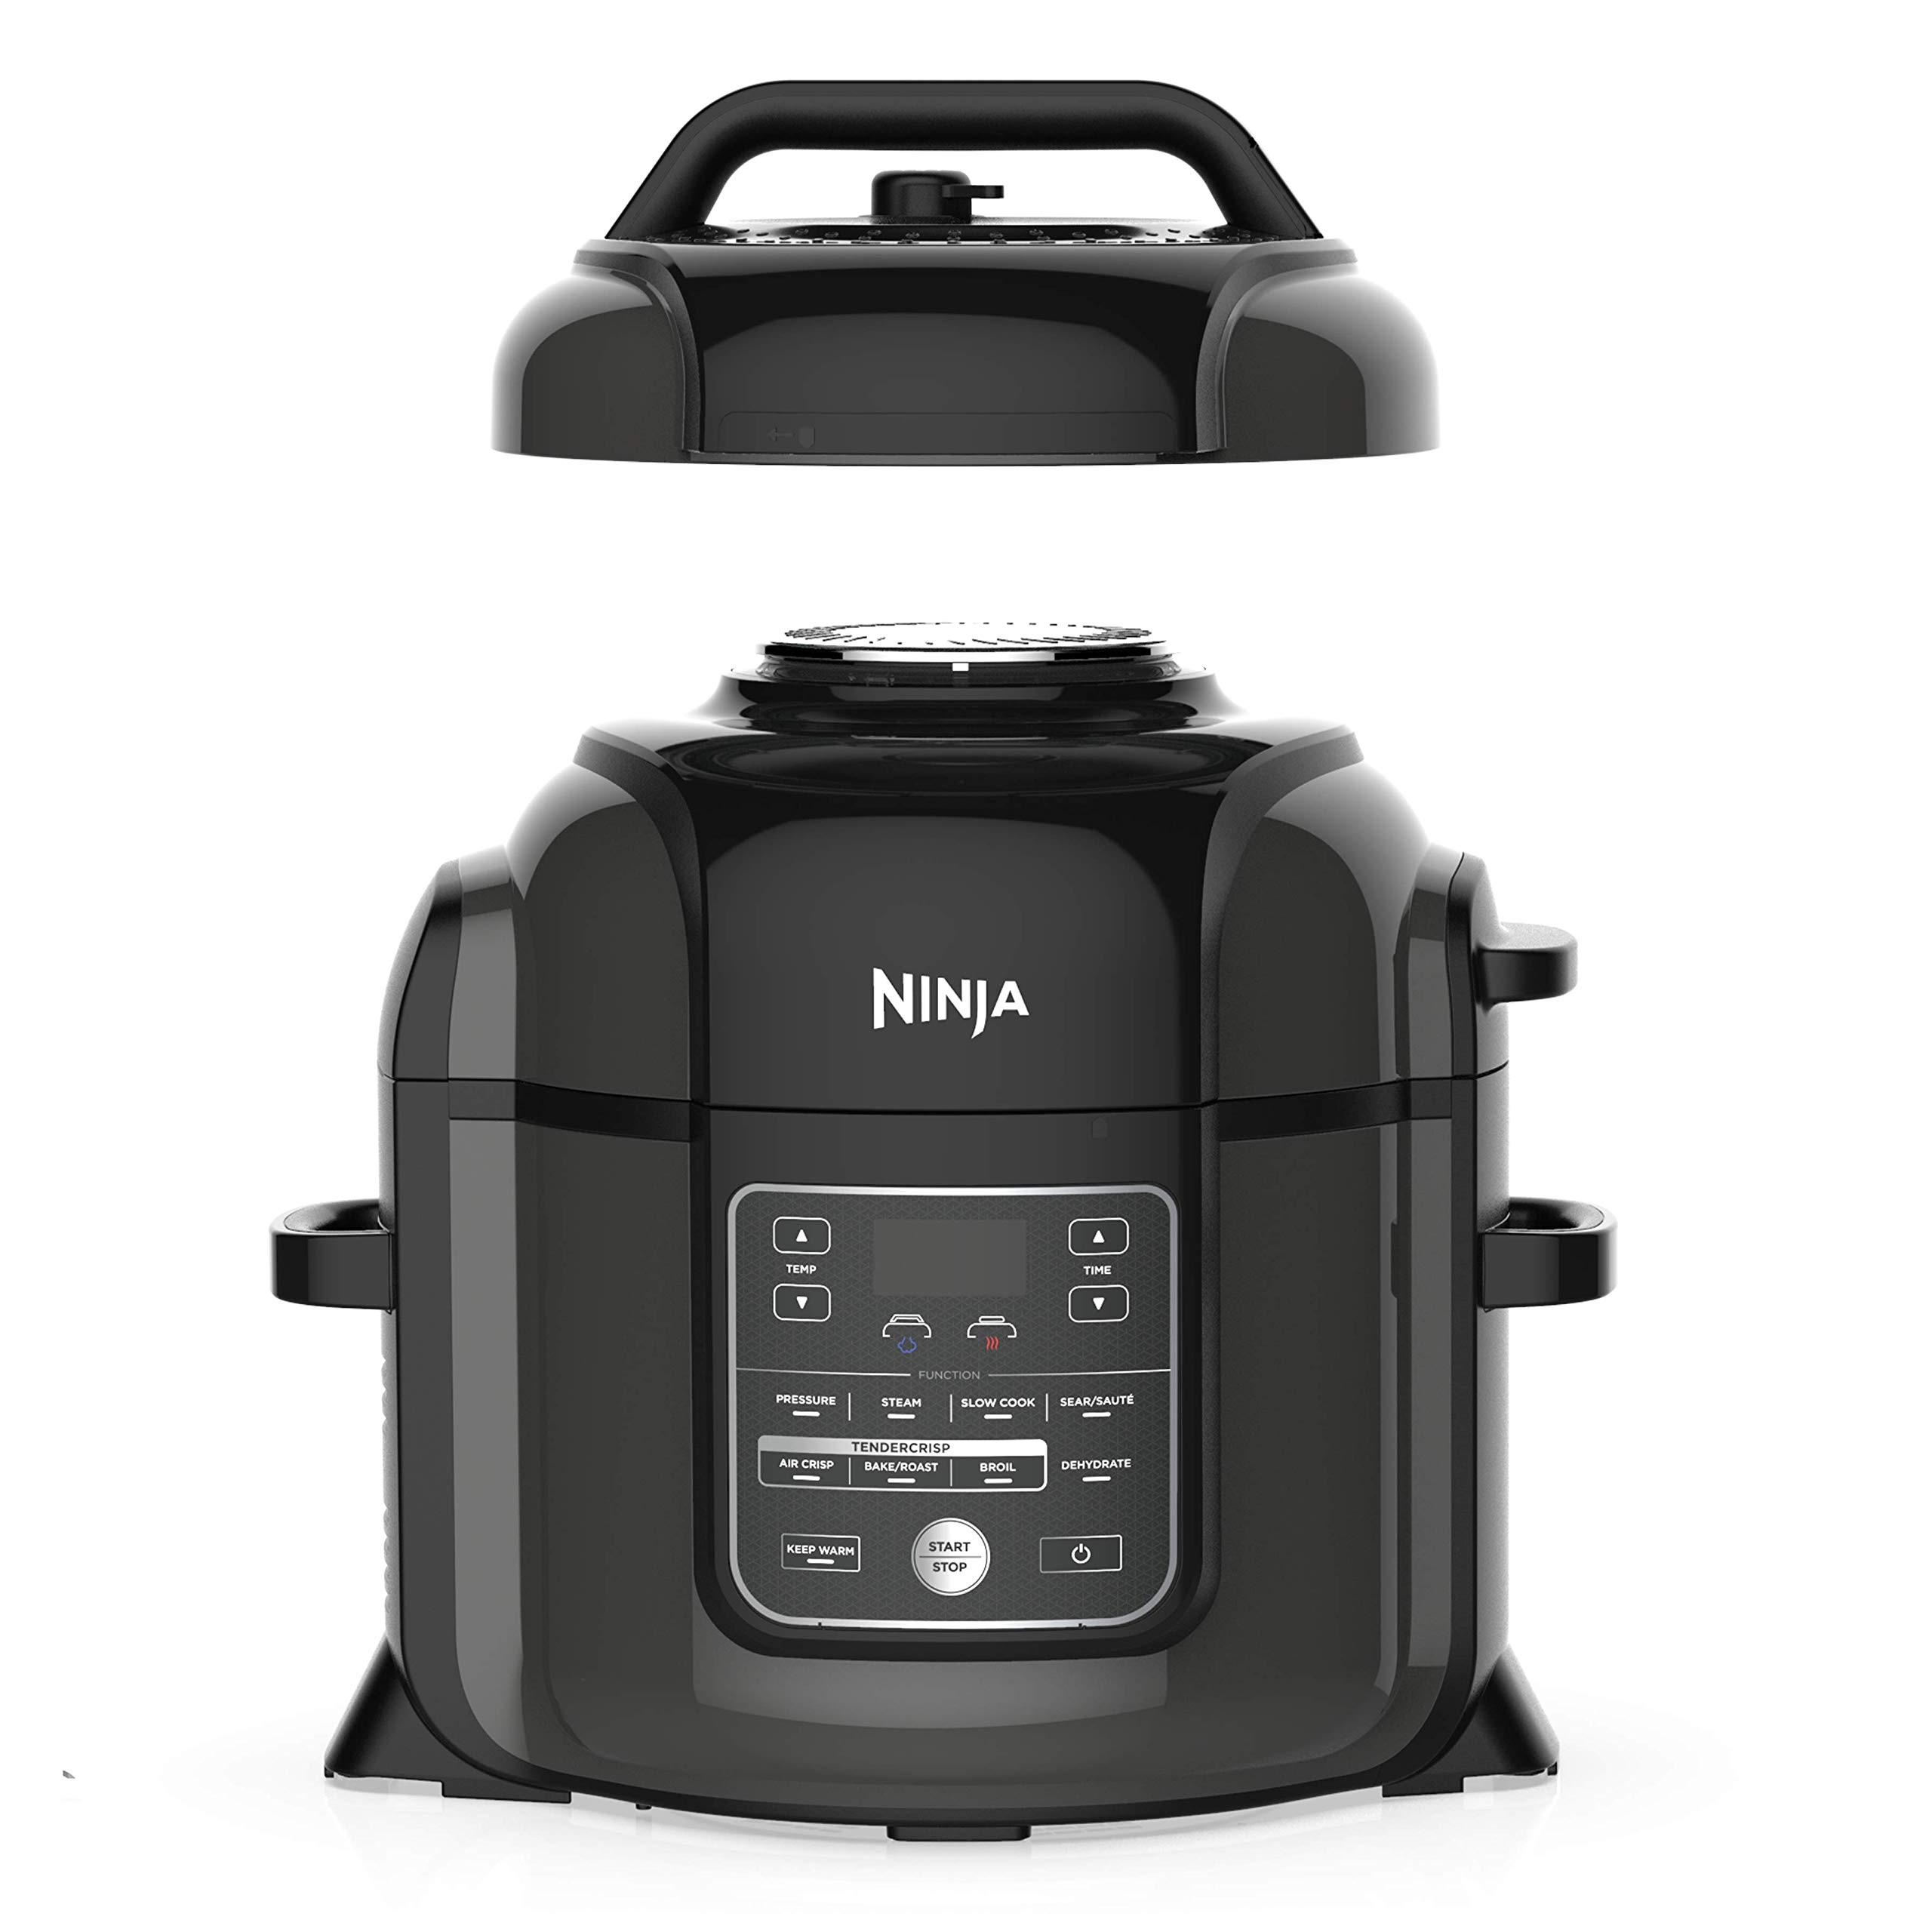 Ninja Foodi 9-in-1 Pressure, Broil, Dehydrate, Slow Cooker, Air Fryer, and More, 8-Quart, and a High Gloss Finish